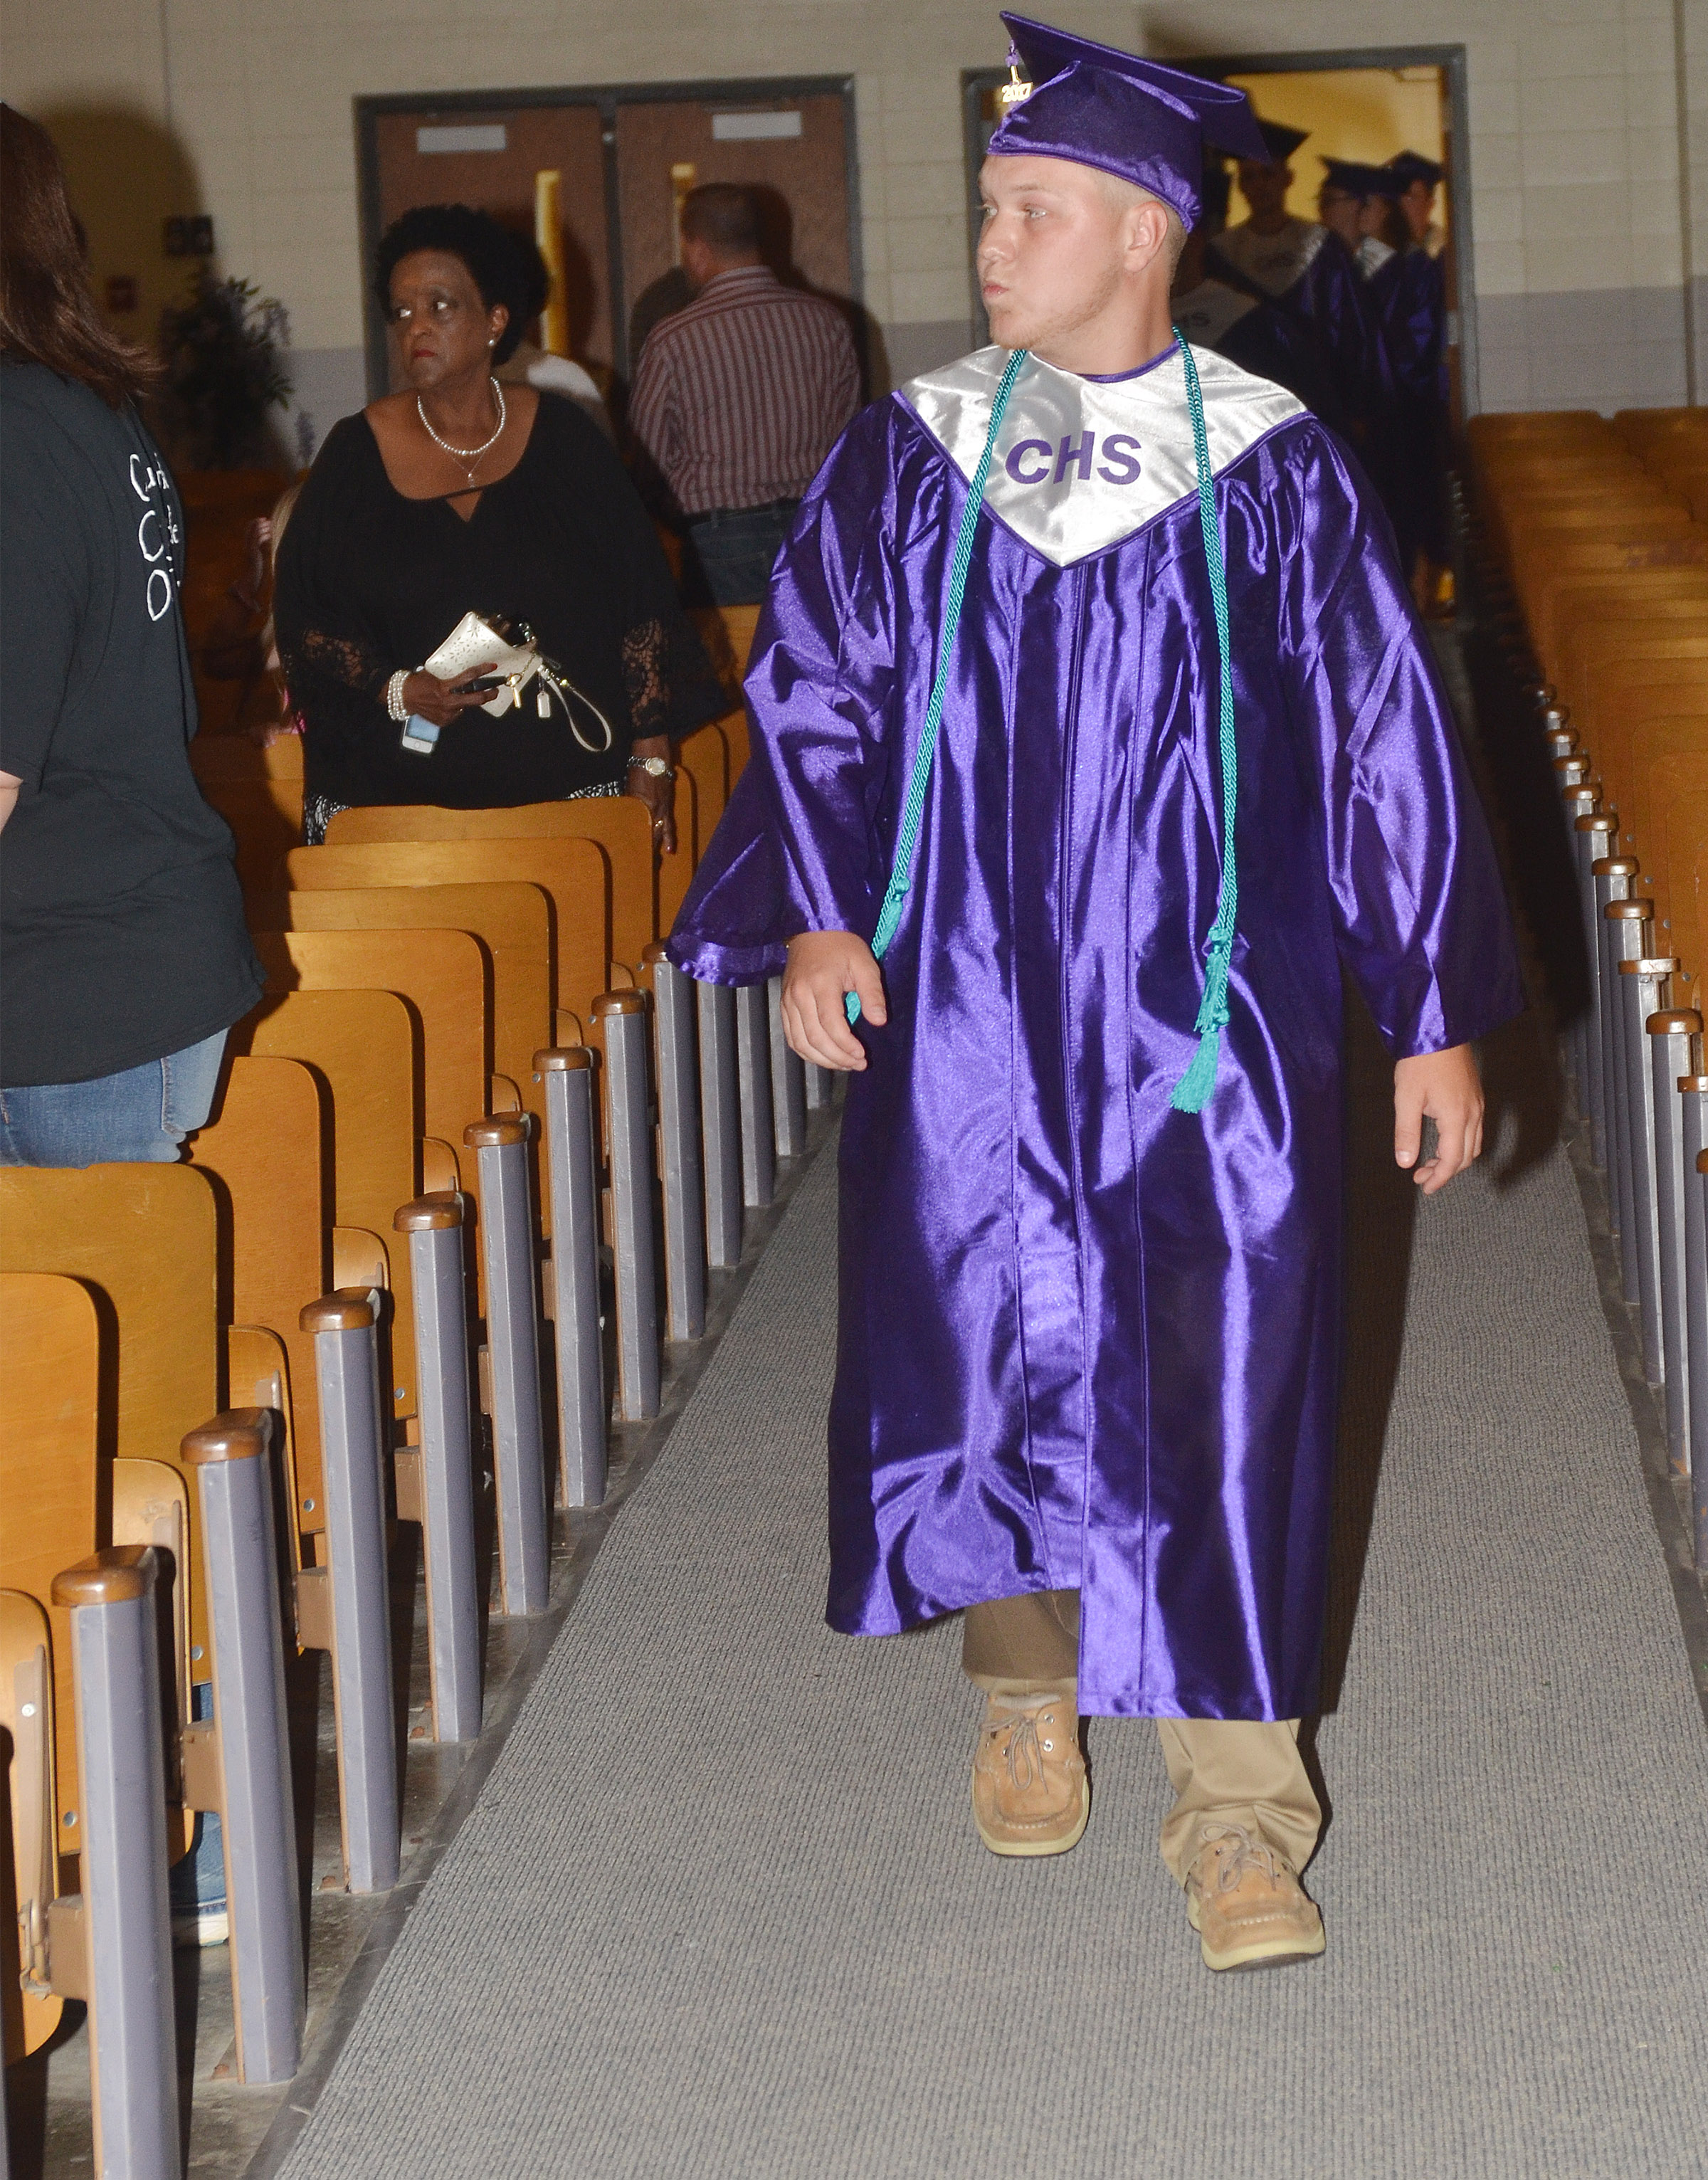 CHS senior Noah Wagers walks in Hamilton Auditorium for the baccalaureate ceremony.